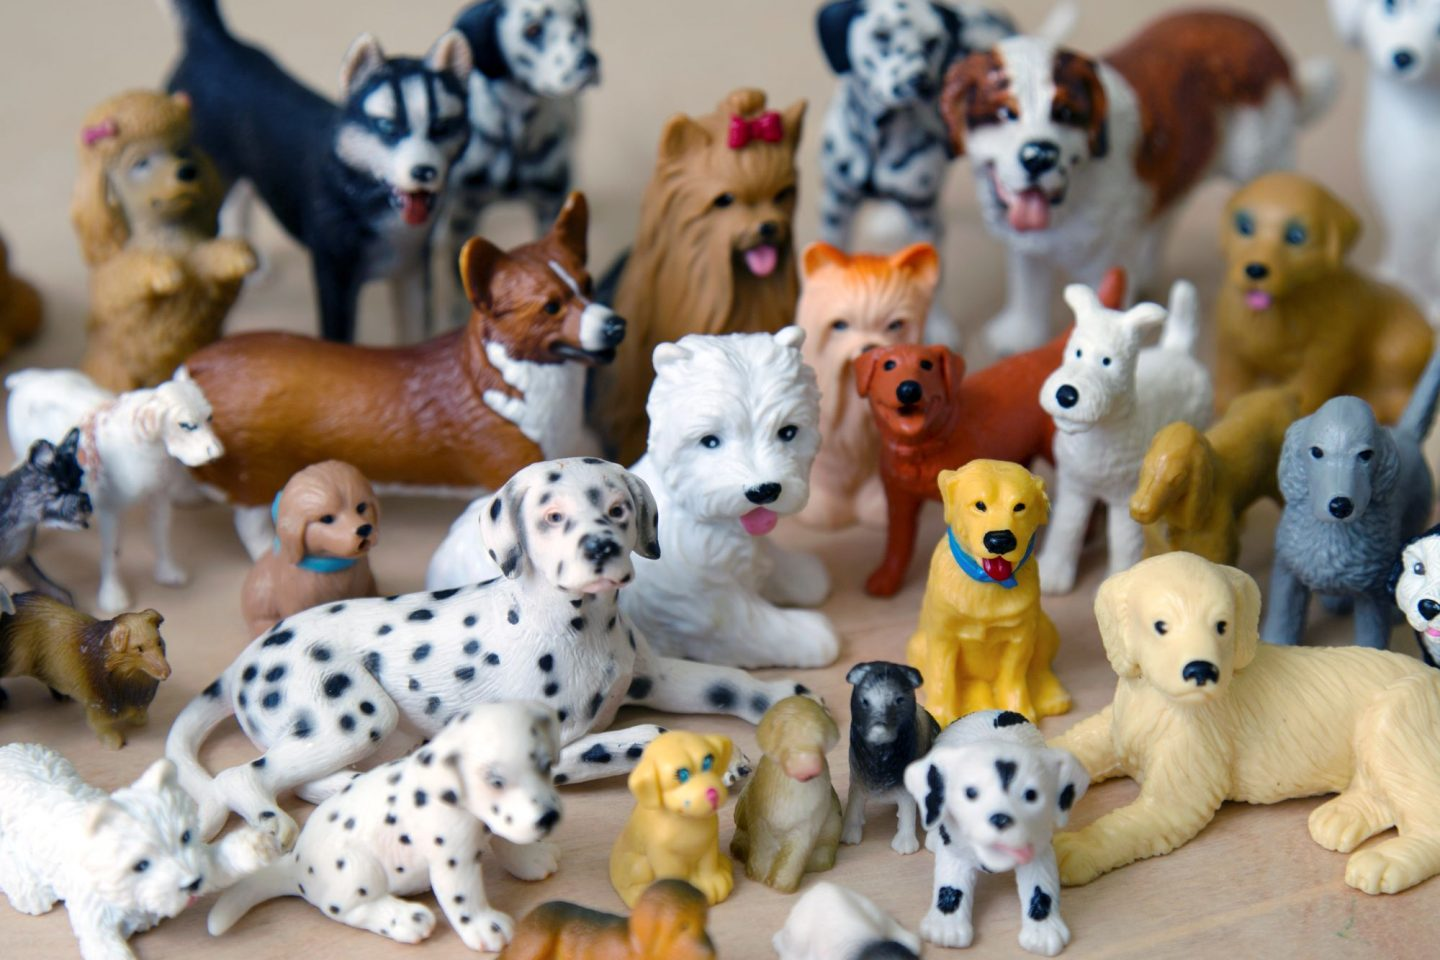 Plastic dog figurines arranged as if posing for a family photo